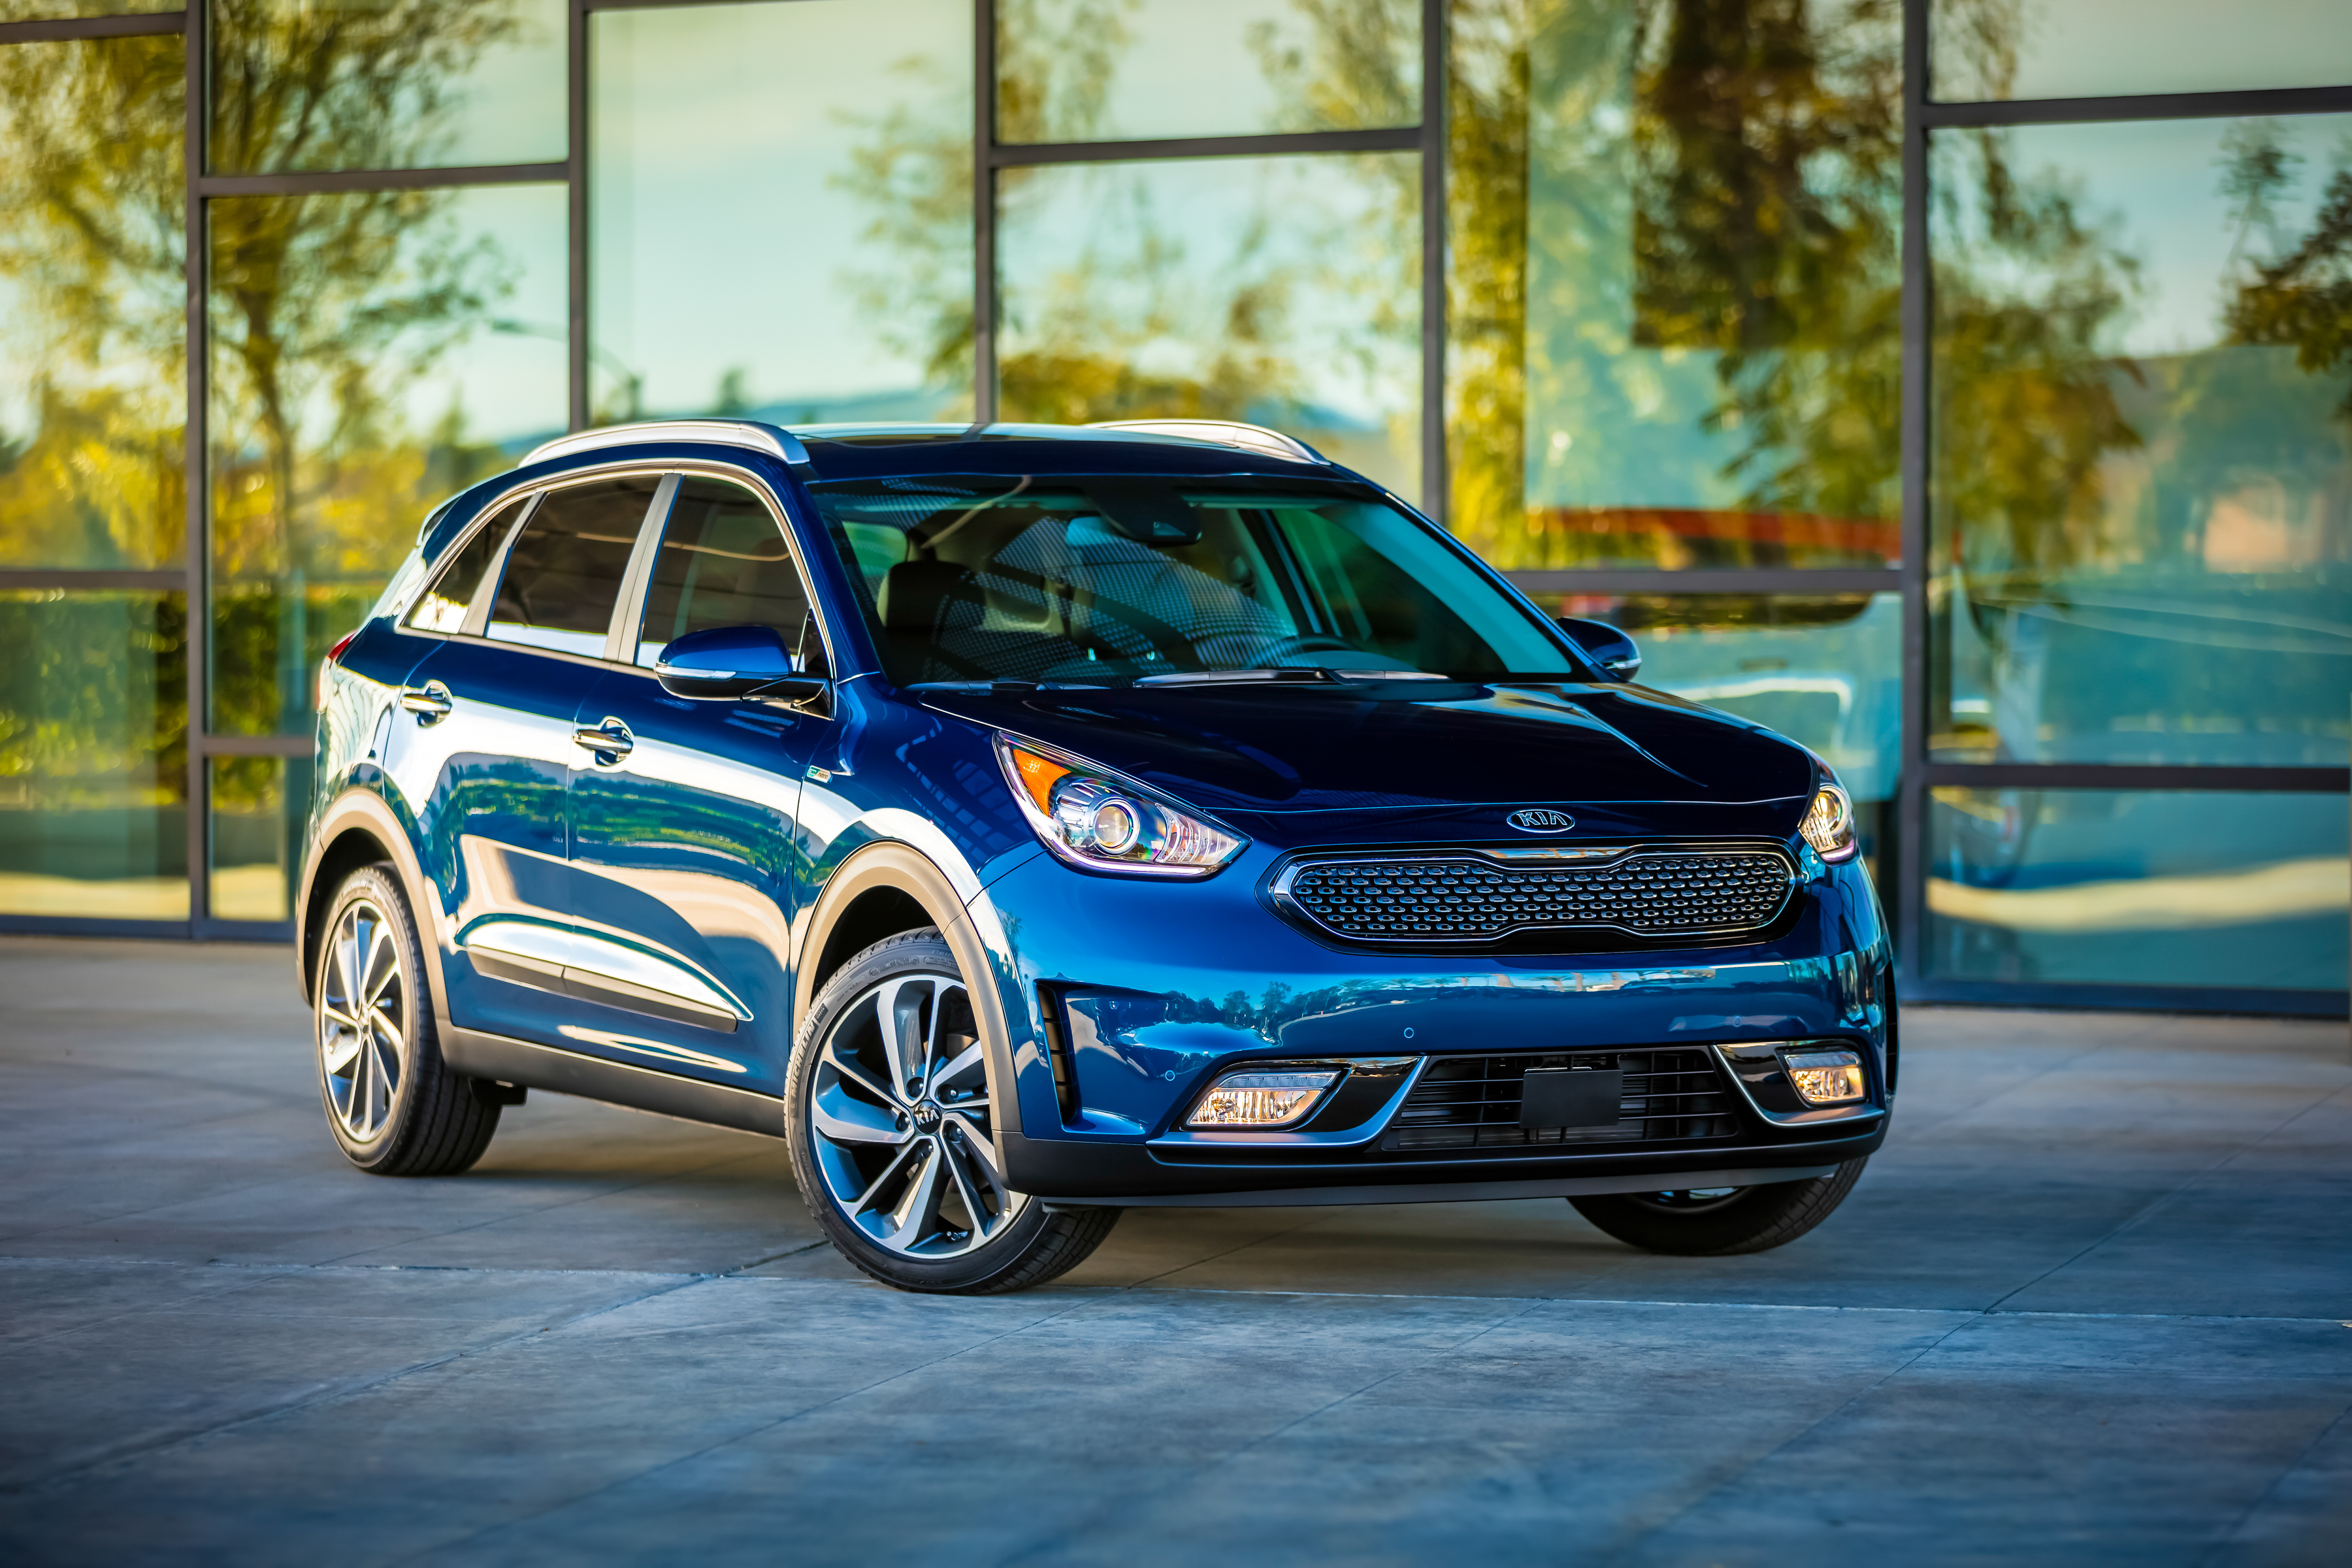 All-new 2017 Kia Niro Hybrid Utility Vehicle